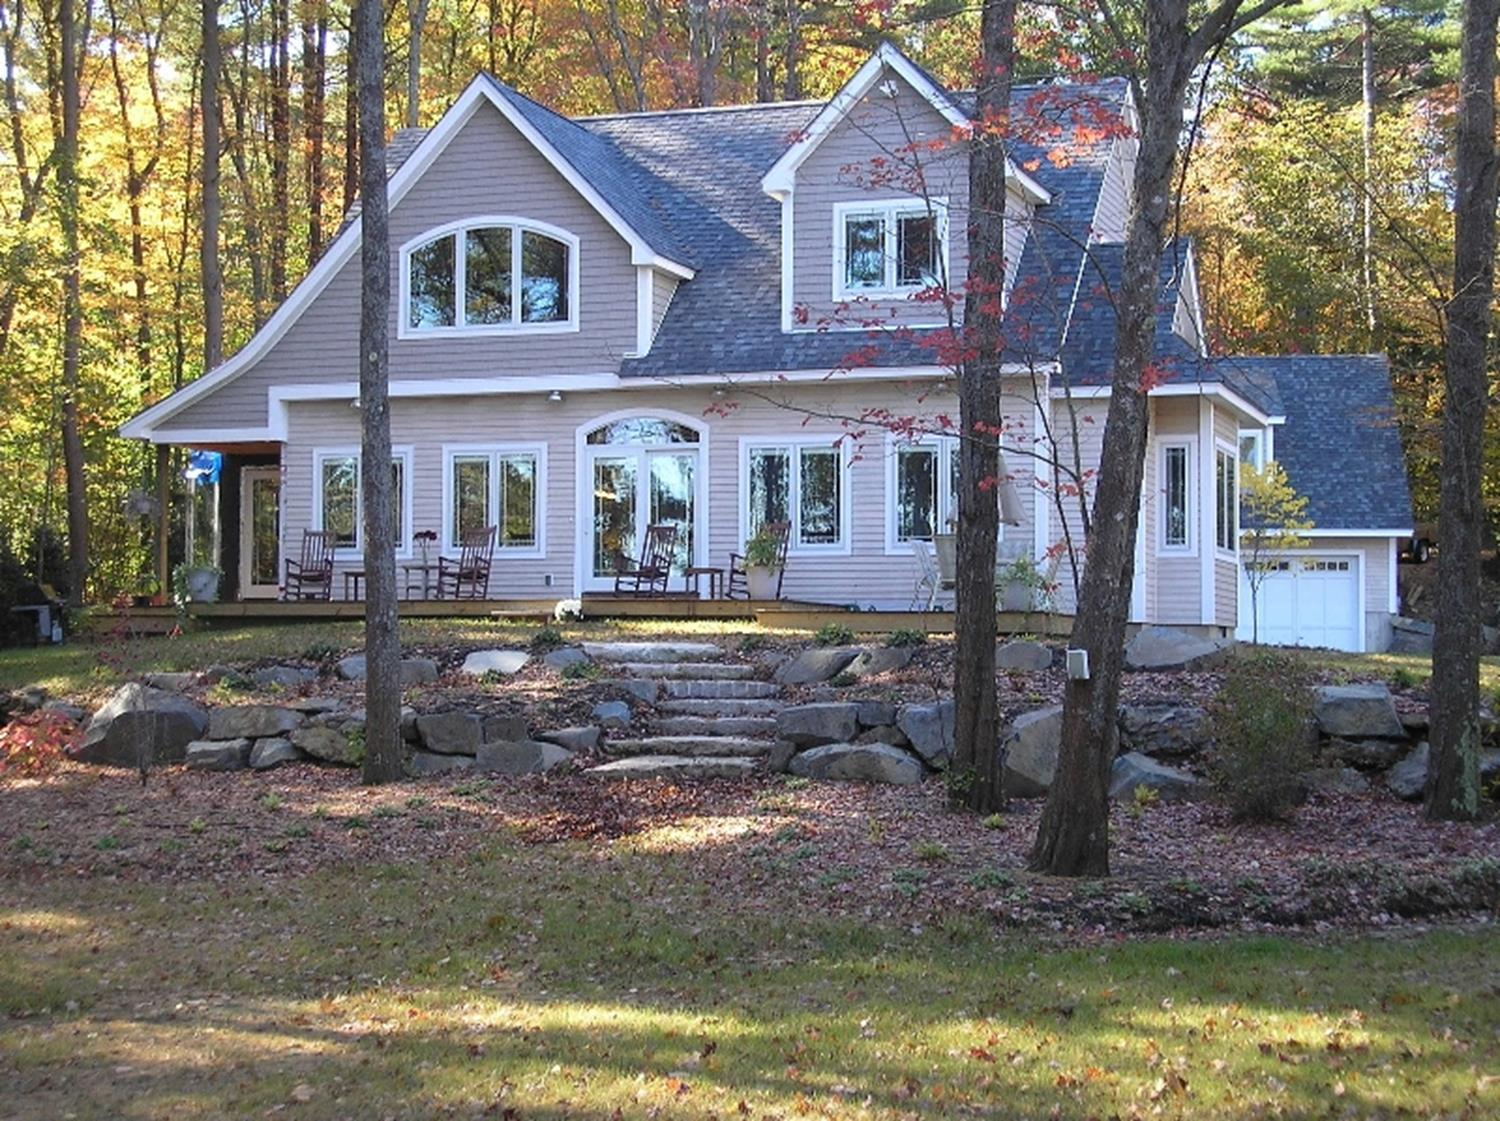 Top modular home builders massachusetts rhode island for Cape cod style modular homes